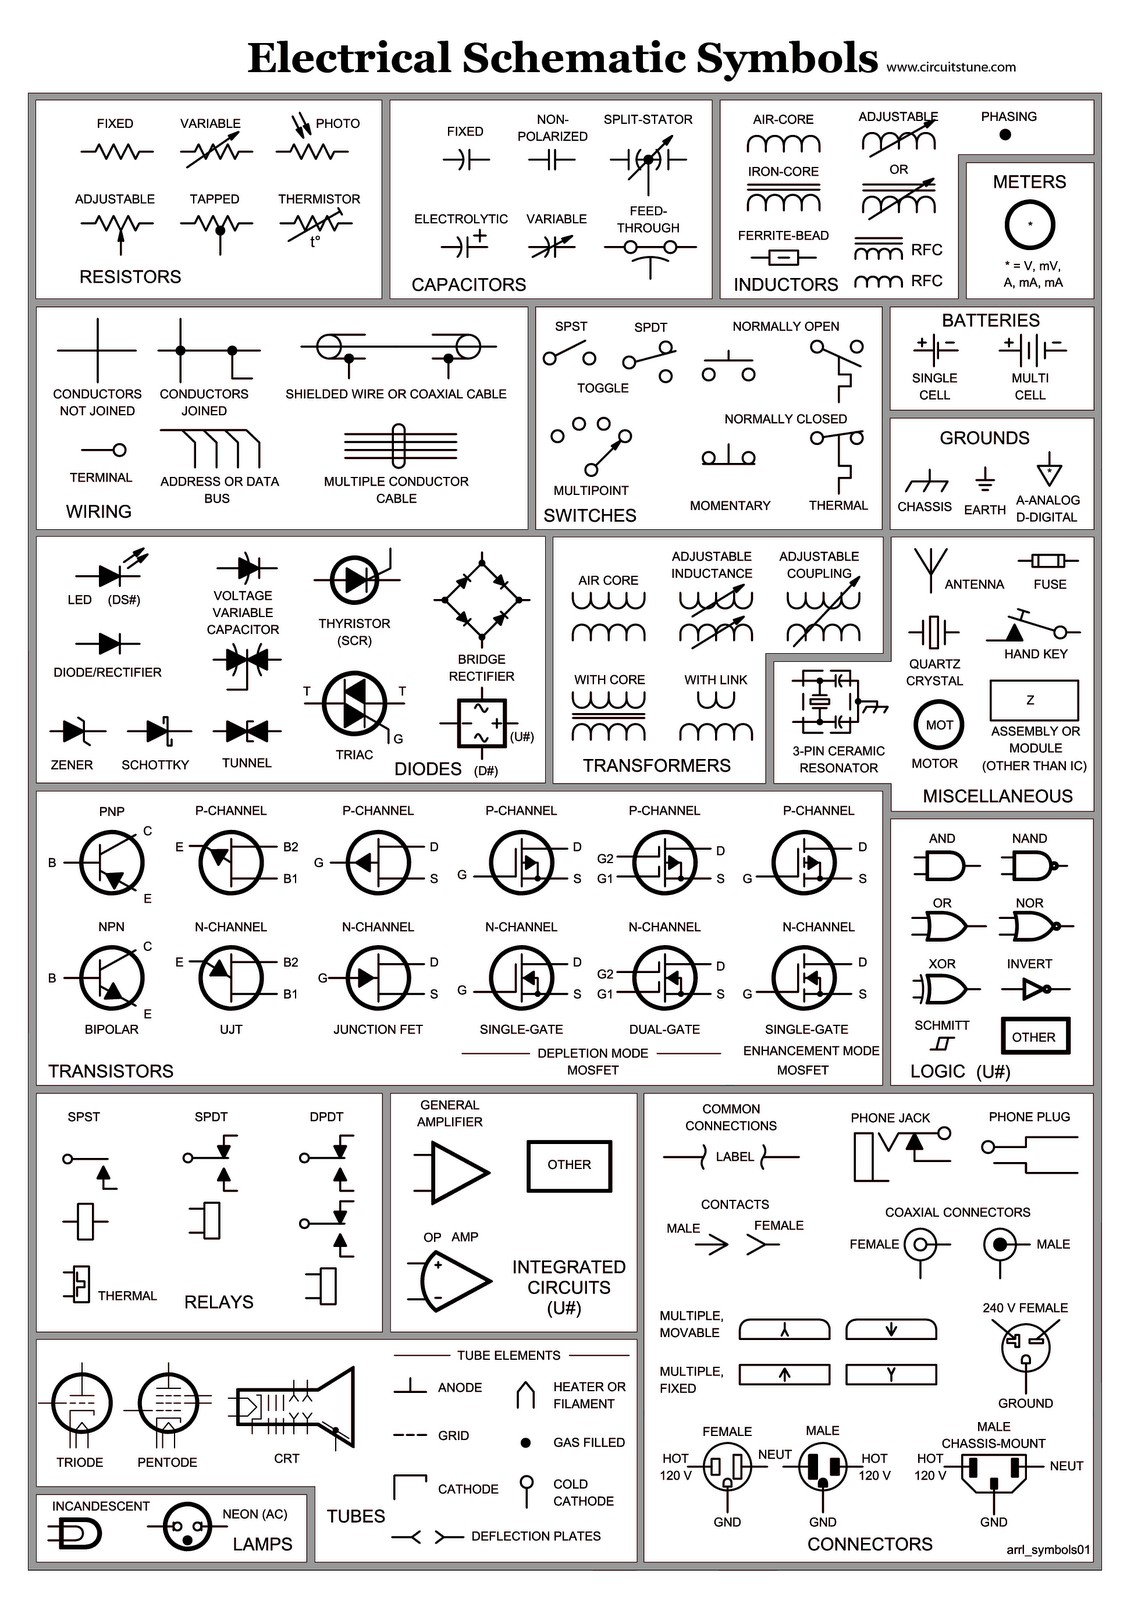 Electrical Schematic Symbols Electrical circuit schematic symbols are graphical sign that is used to design electronic electrical cir